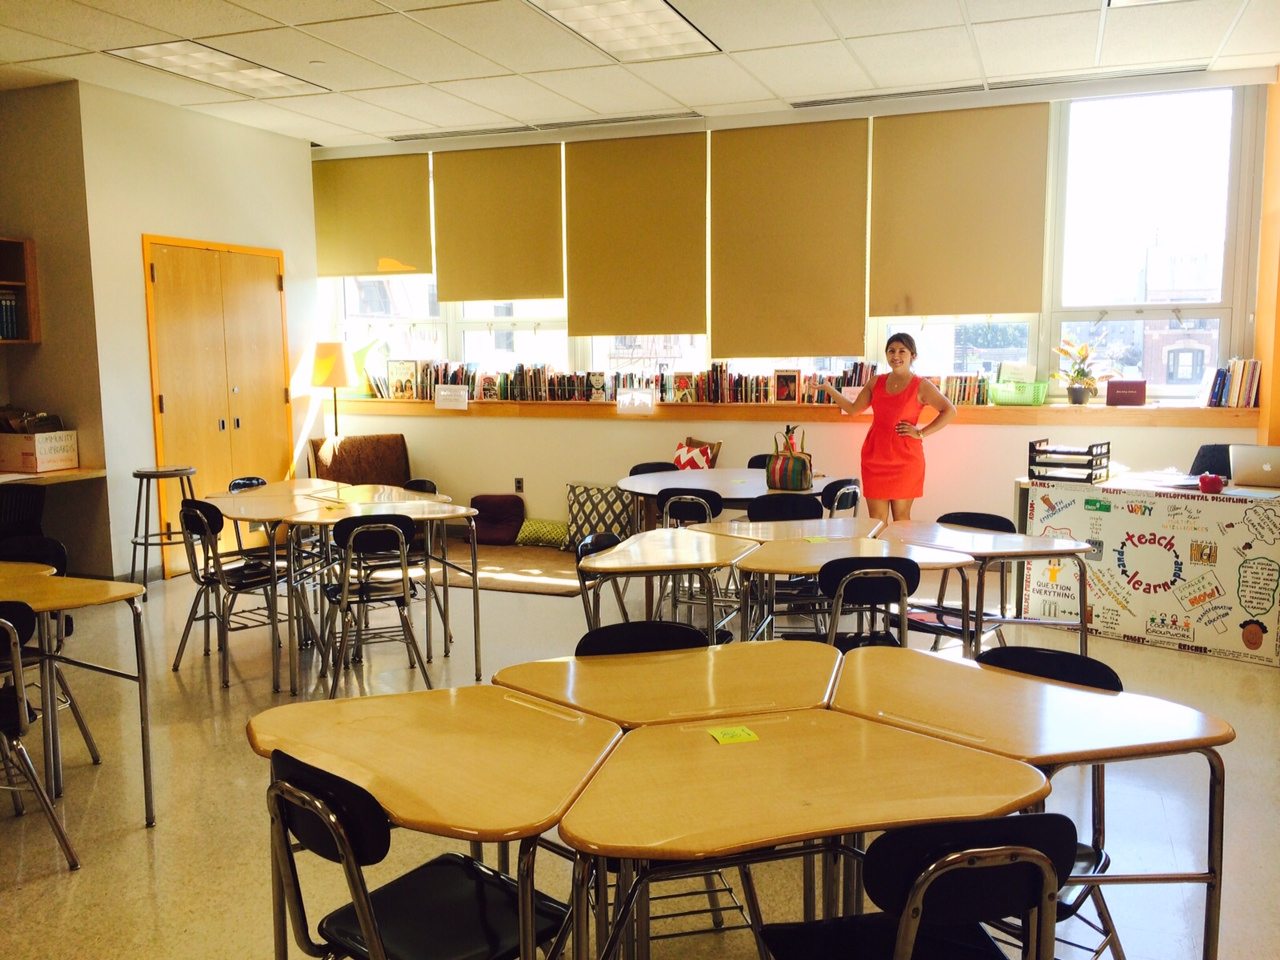 One of my co-teachers in our classroom on the first day.